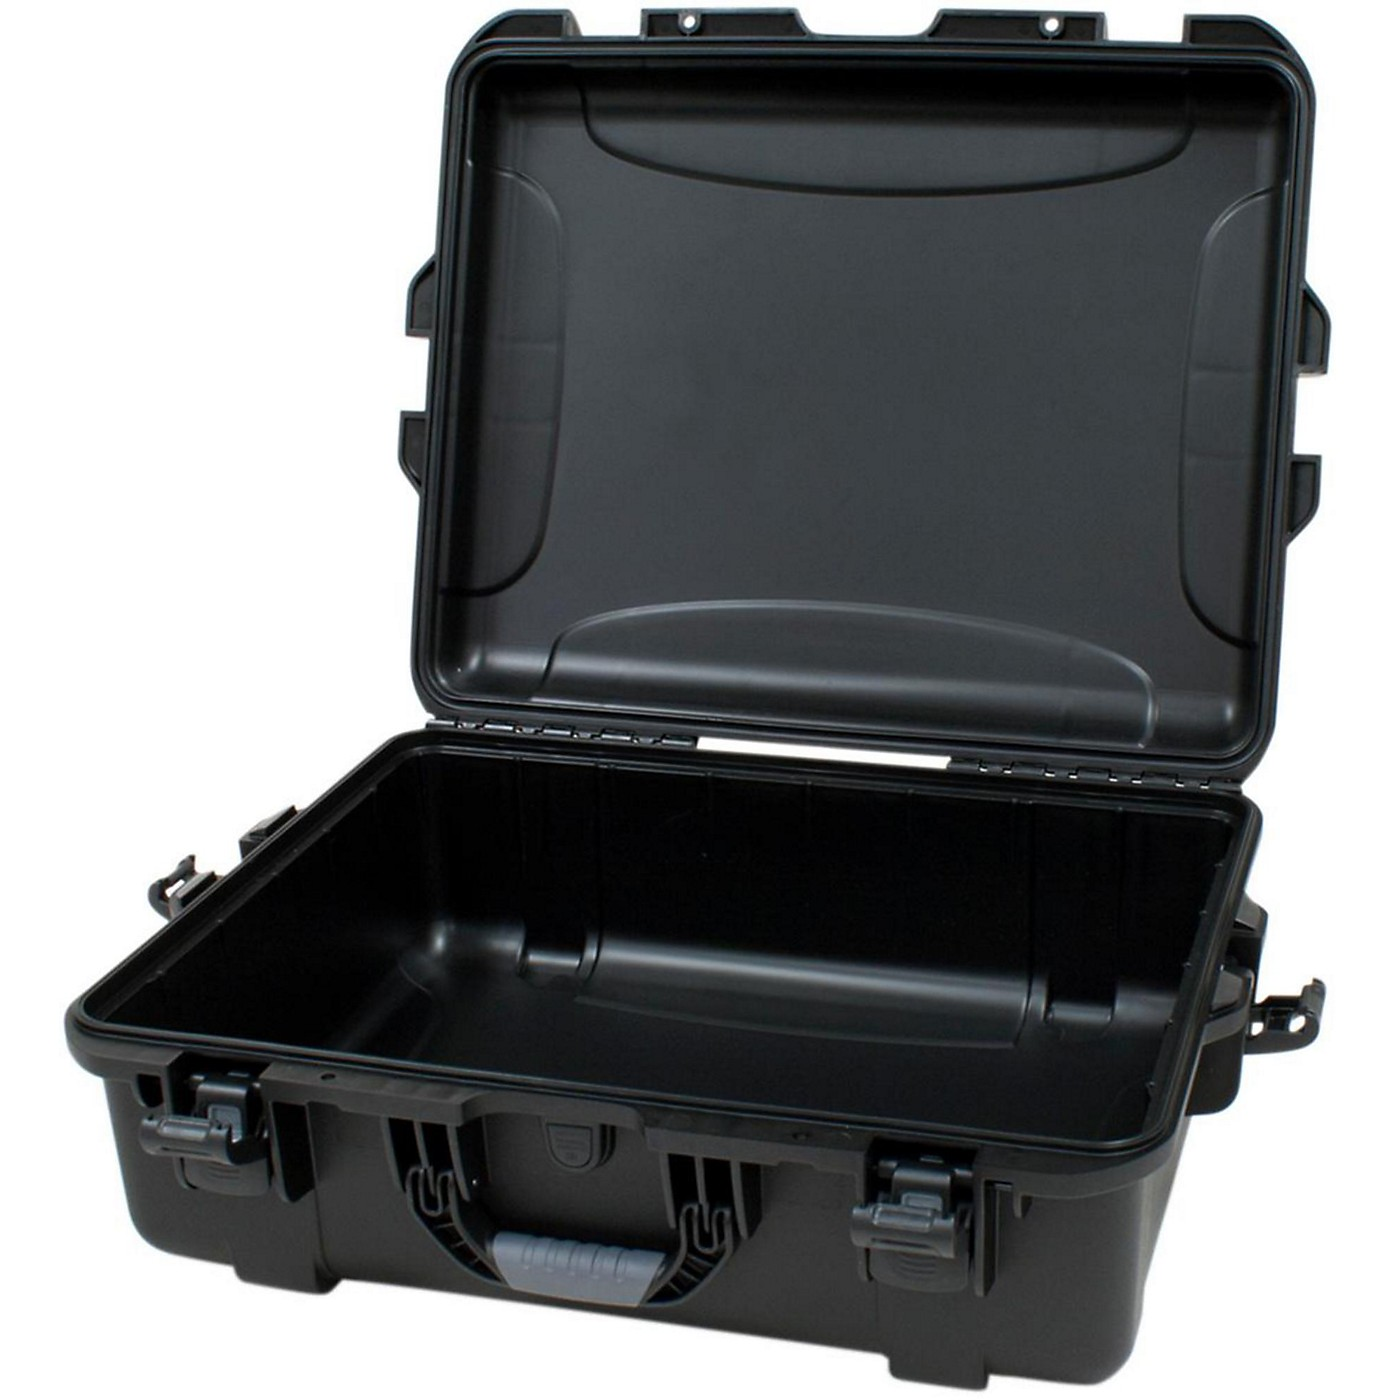 Gator GU-2217-08-WPNF Waterproof Injection Molded Case thumbnail